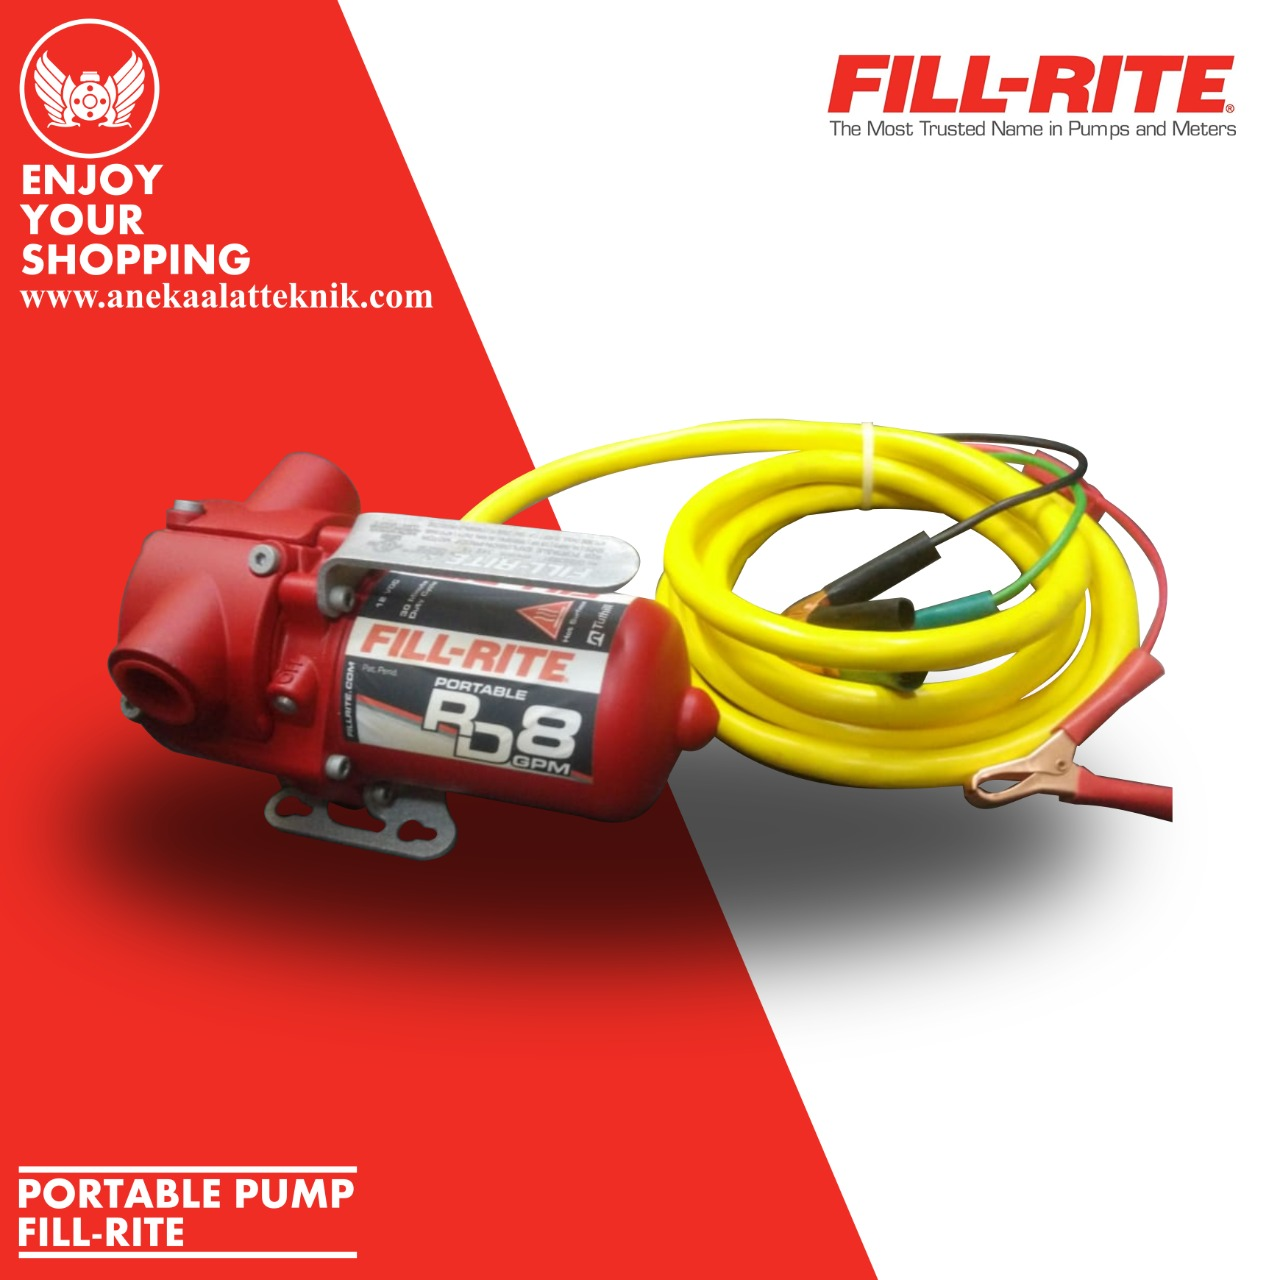 PORTABLE PUMP FILL-RITE